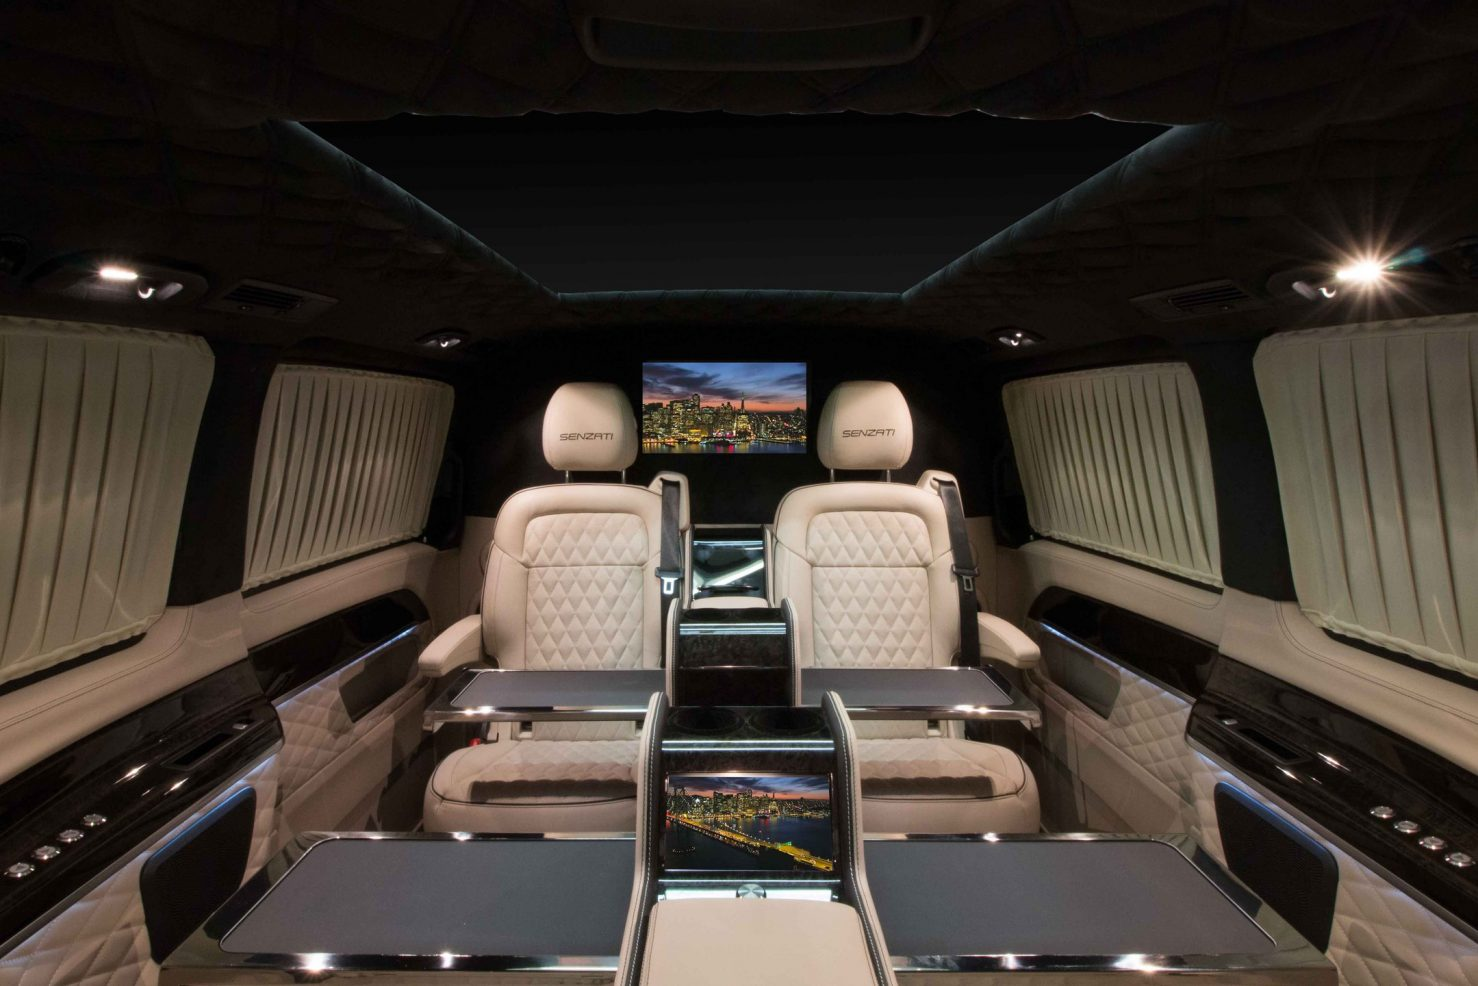 The Senzati Jet Class, Fabulous Interiors to suit a variety of uses